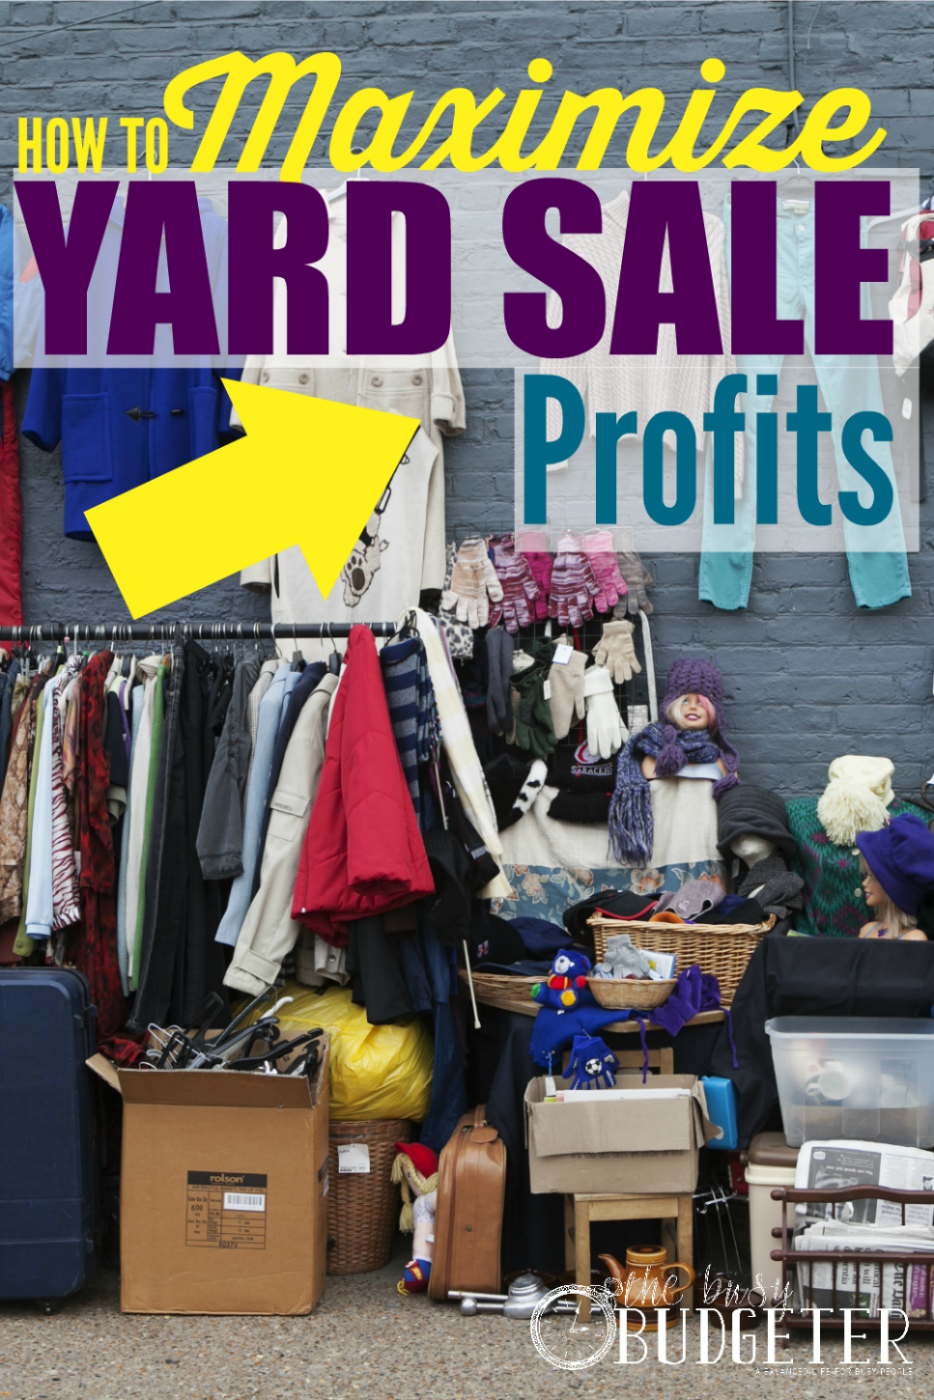 How to Maximize Yard Sale Profits. ? I wish i saw this last month. We did okay, and made $400 in 3 hours but I'm kicking myself as I read this because it makes so much sense! Why didn't I think of the craigslist trick?!